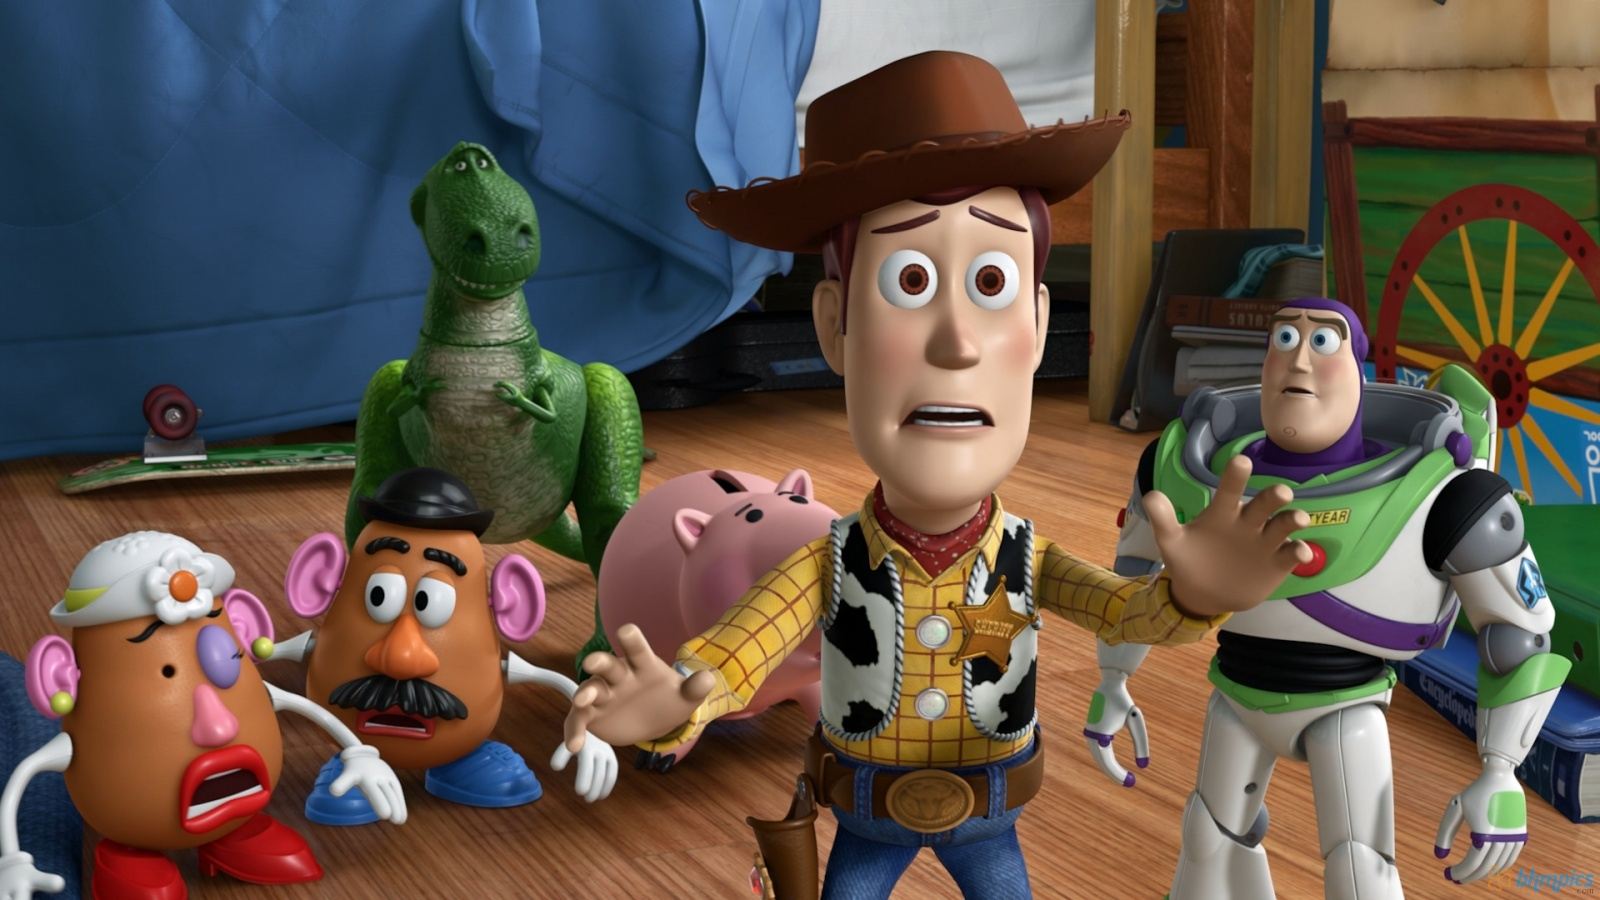 Toy Story Toys : A look at disney opens the toy box story manic